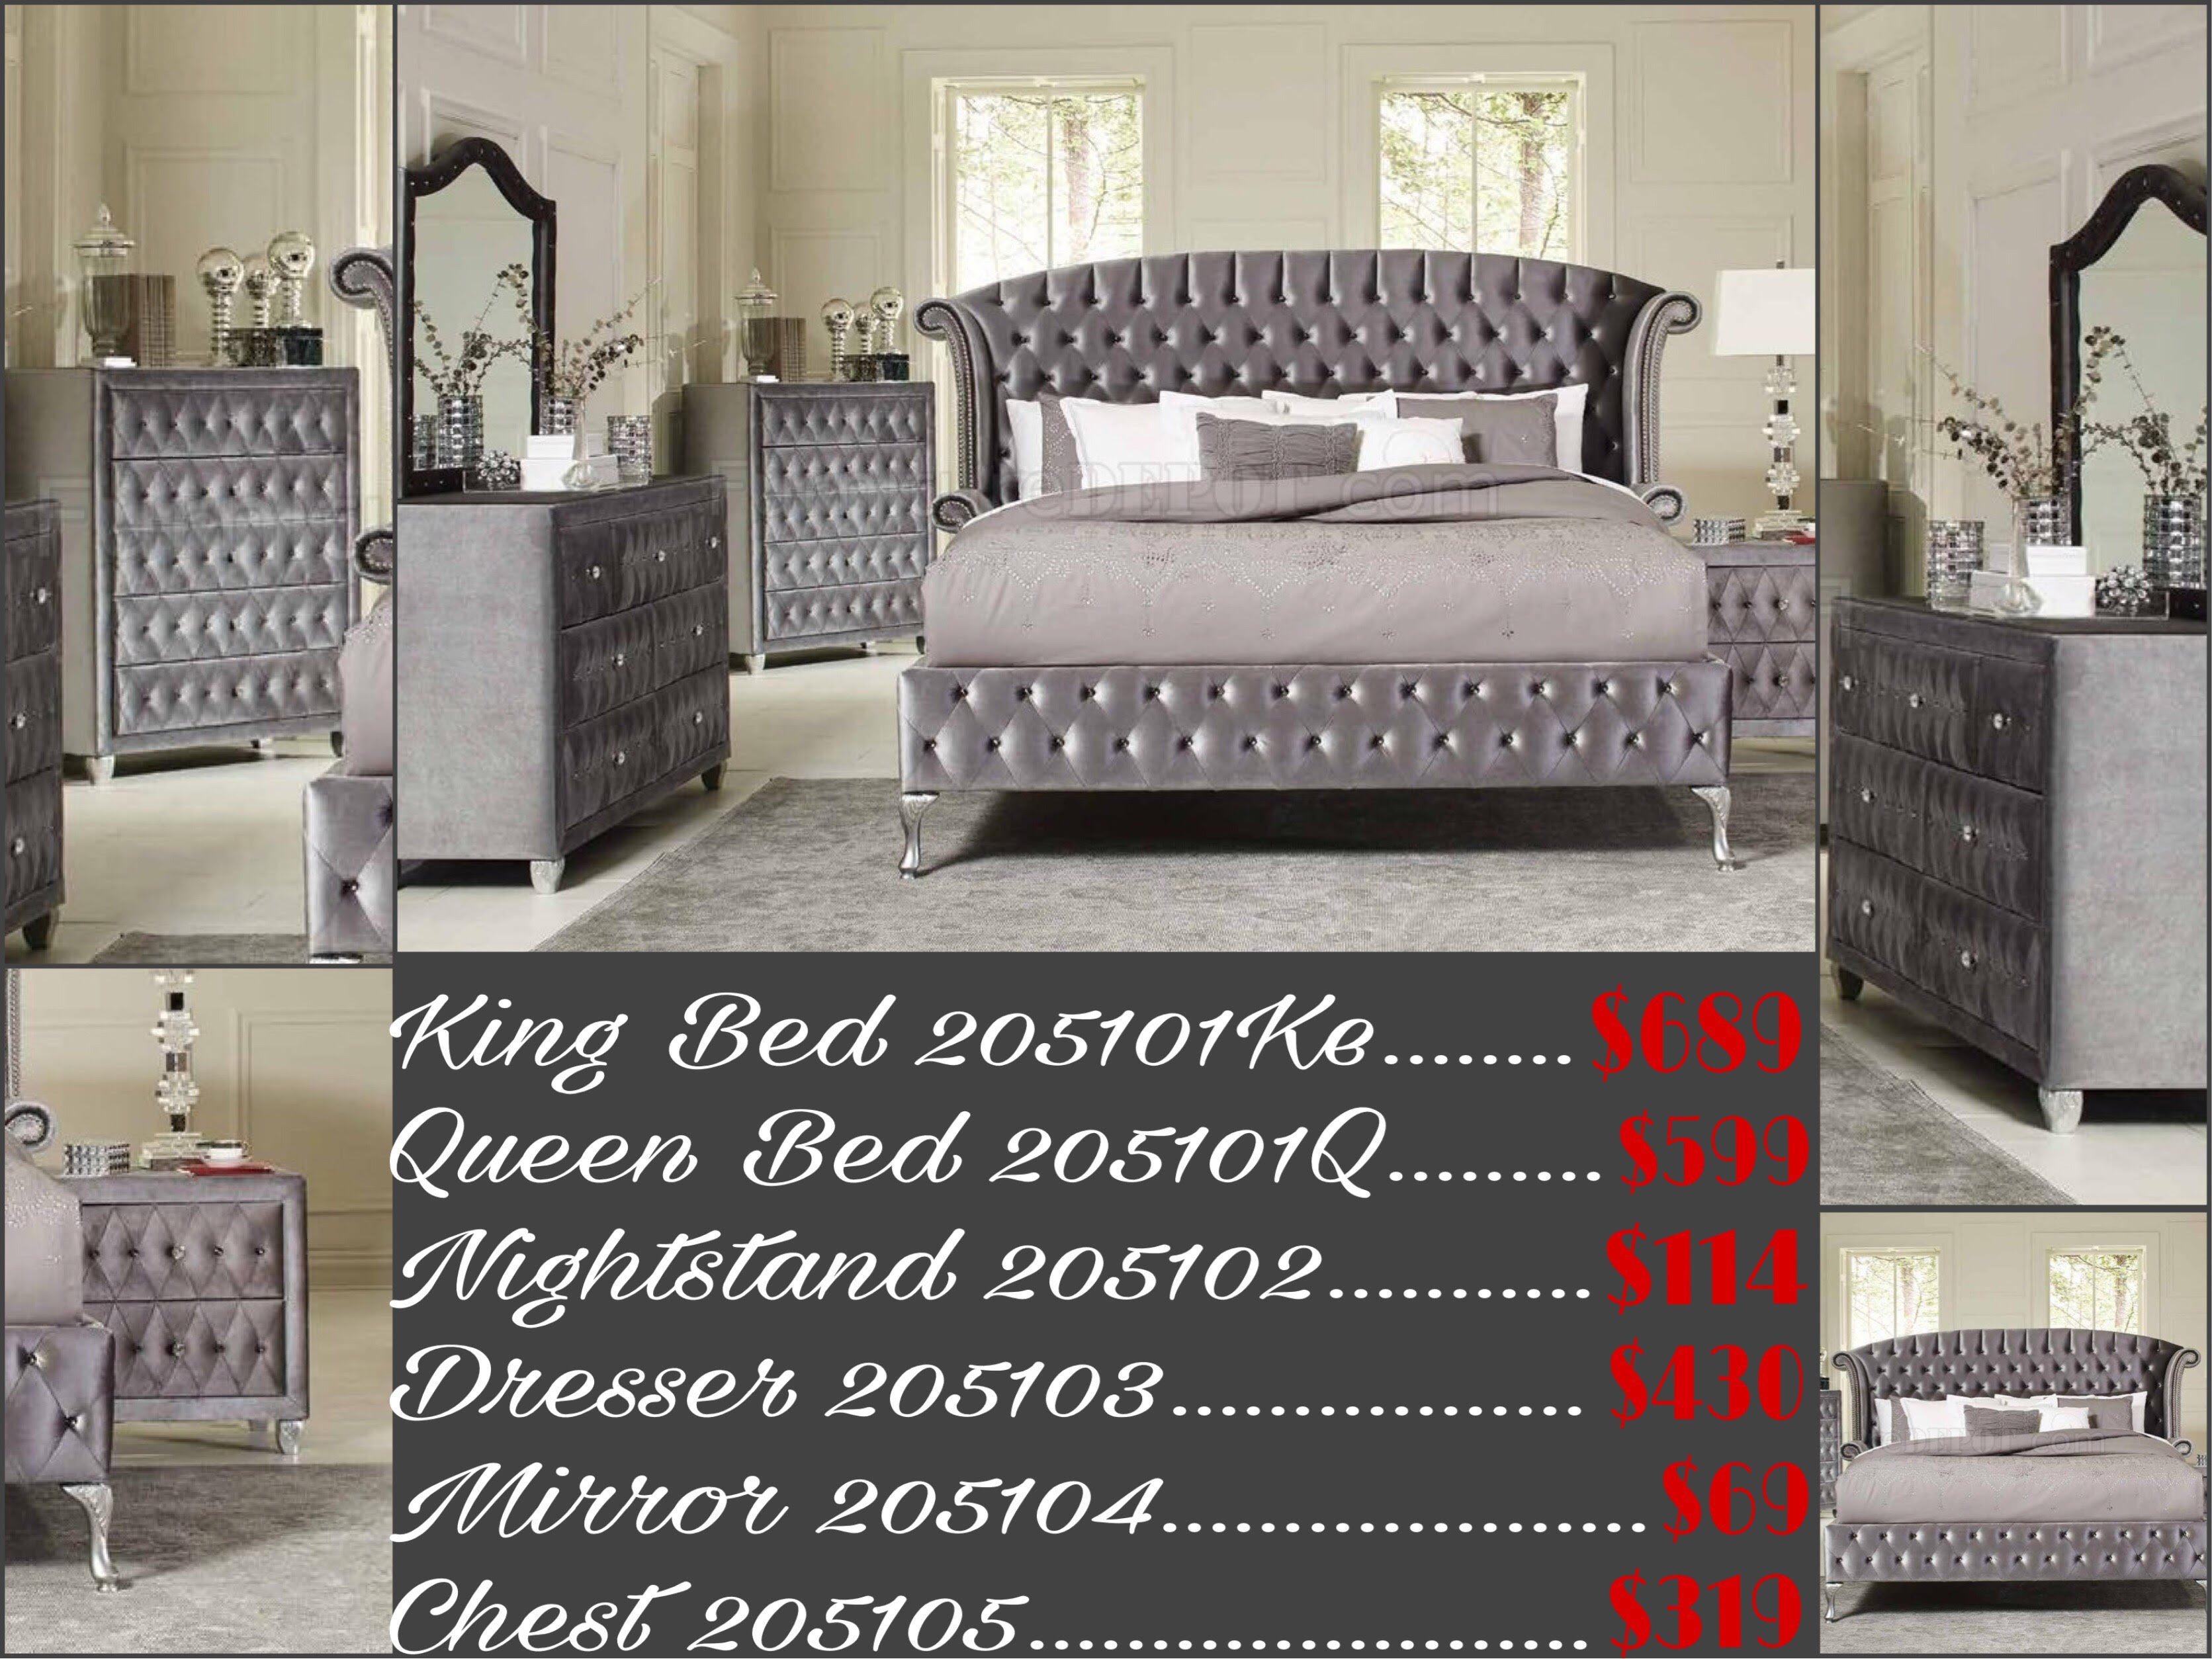 Cancun Market Dallas Fort Worth Irving Dfw North Texas Furniture And Mattresses Store